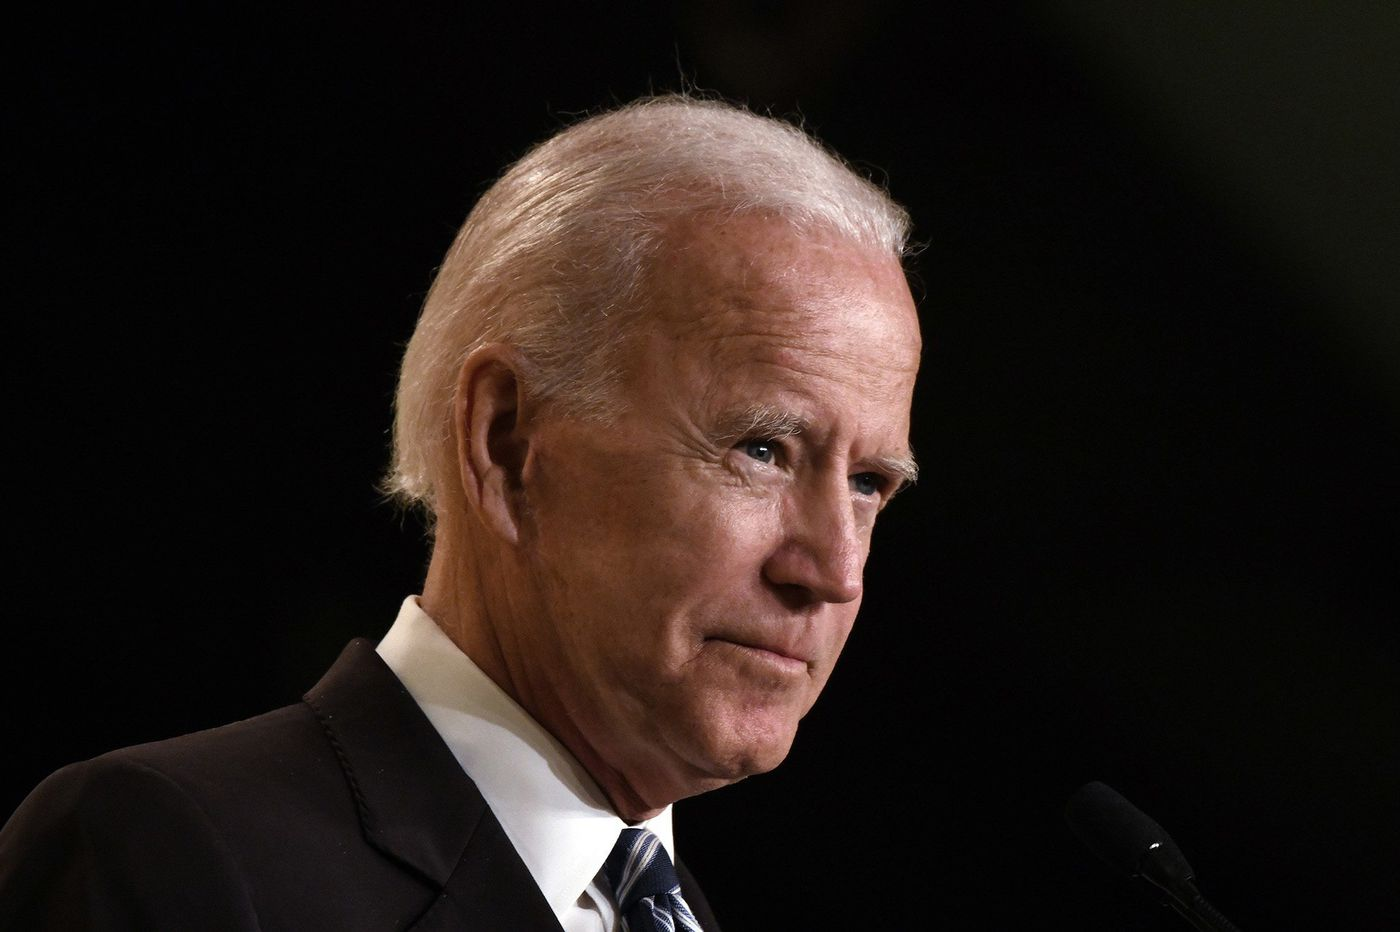 The Qualities That Made Joe Biden An Effective Running Mate In 2008 Hurt His 2020 Presidential